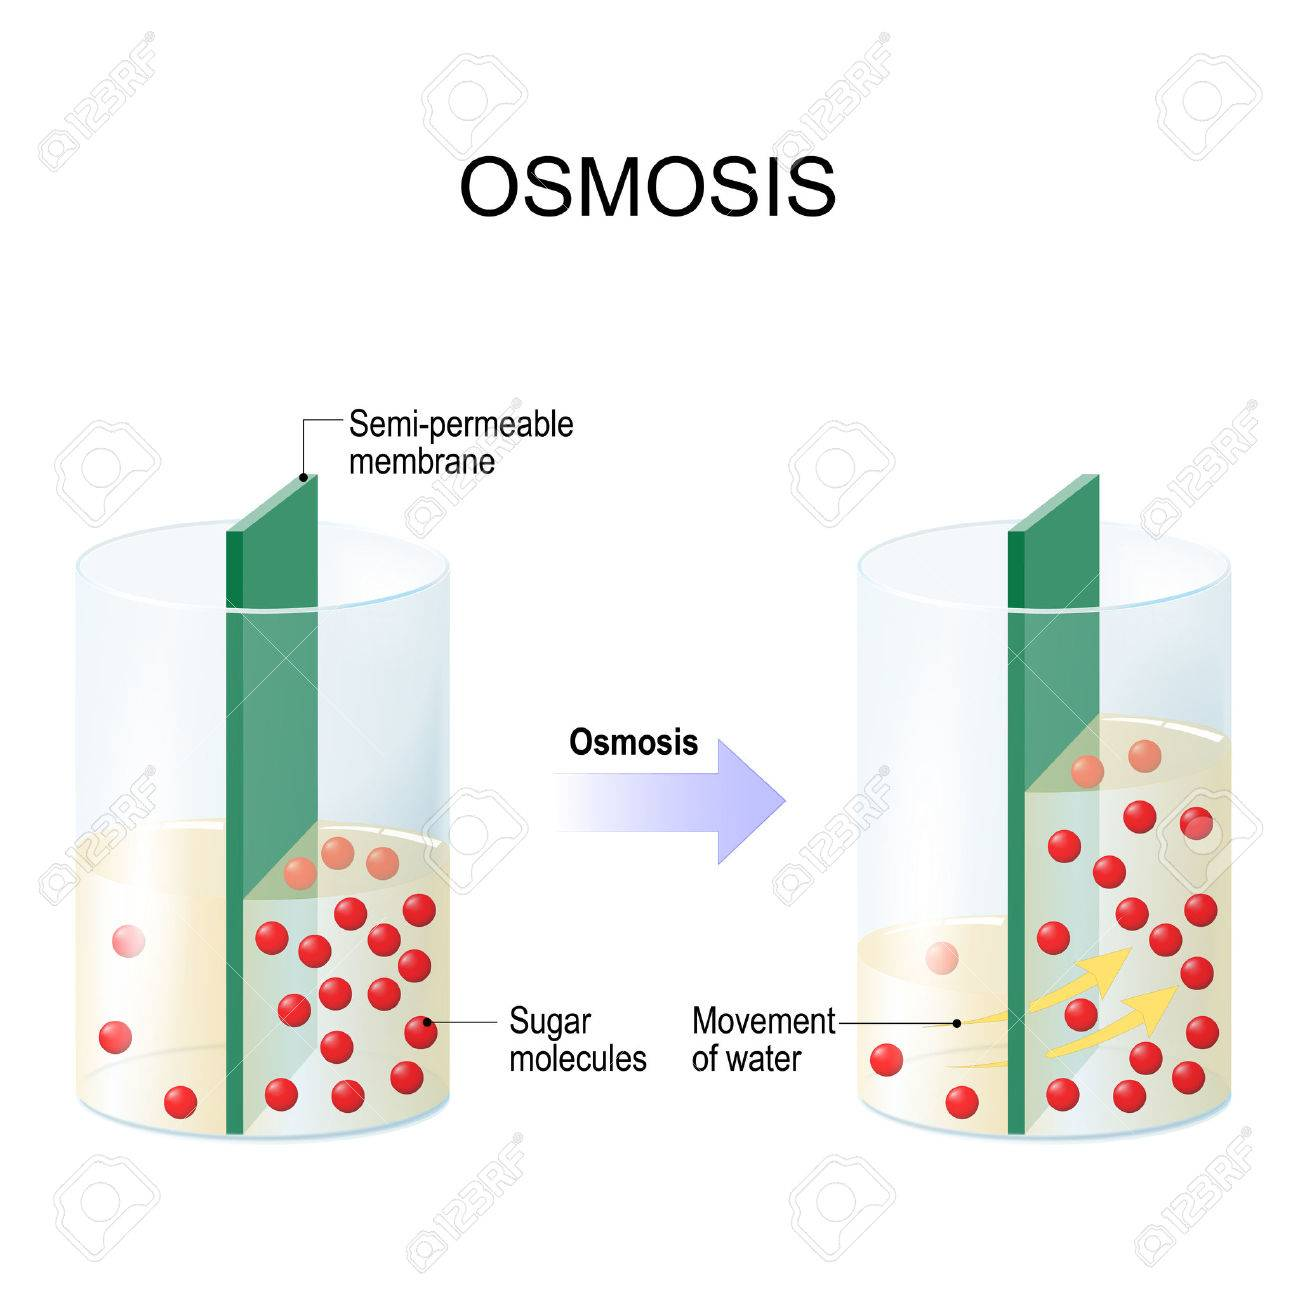 Osmosis. Water passing through a semi-permeable membrane into a region of higher sugar concentration. - 74594840